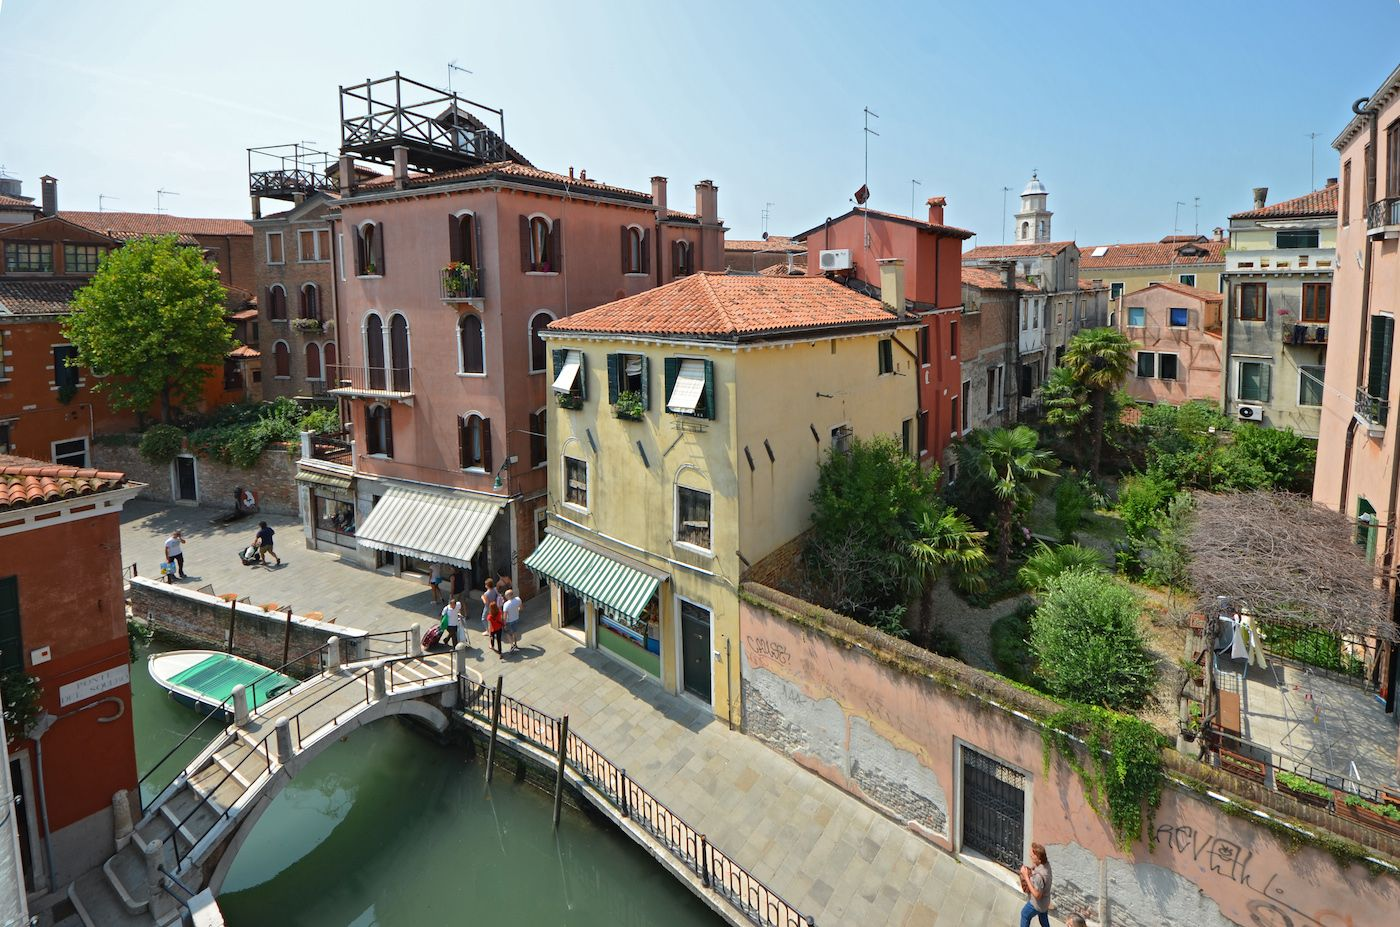 the wide open canal view enjoyable from the Guardi apartment